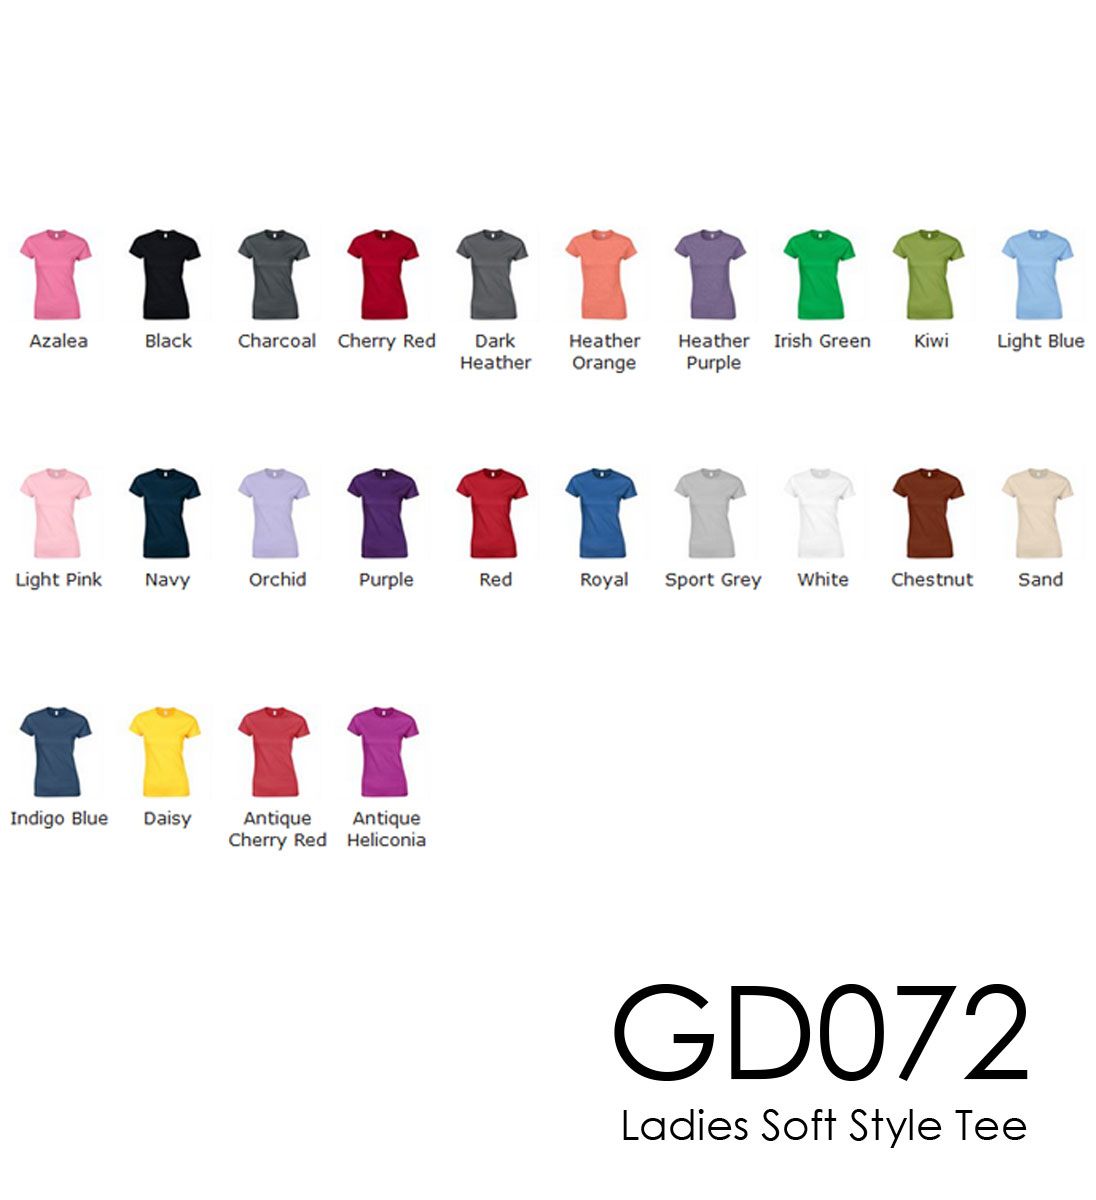 gd072-t-shirt-colours